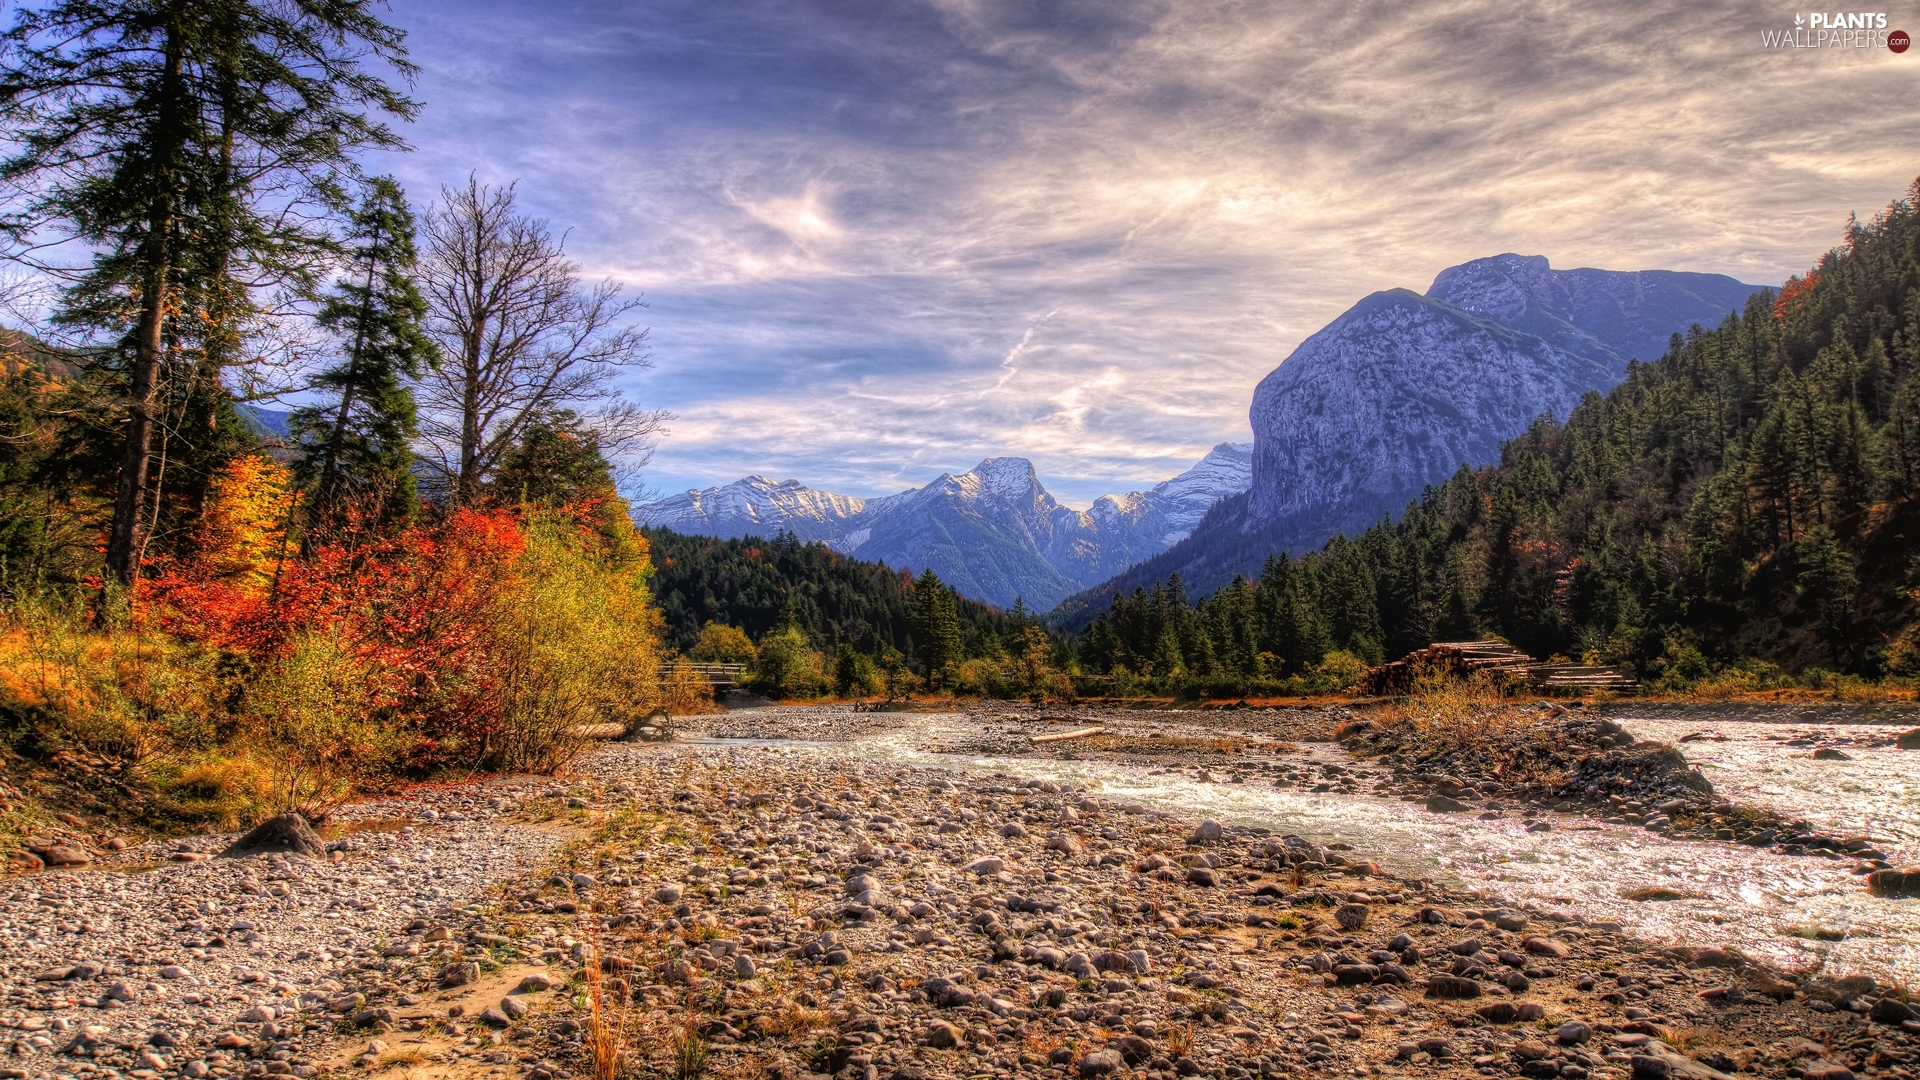 trees, River, autumn, forest, Mountains, viewes, clouds